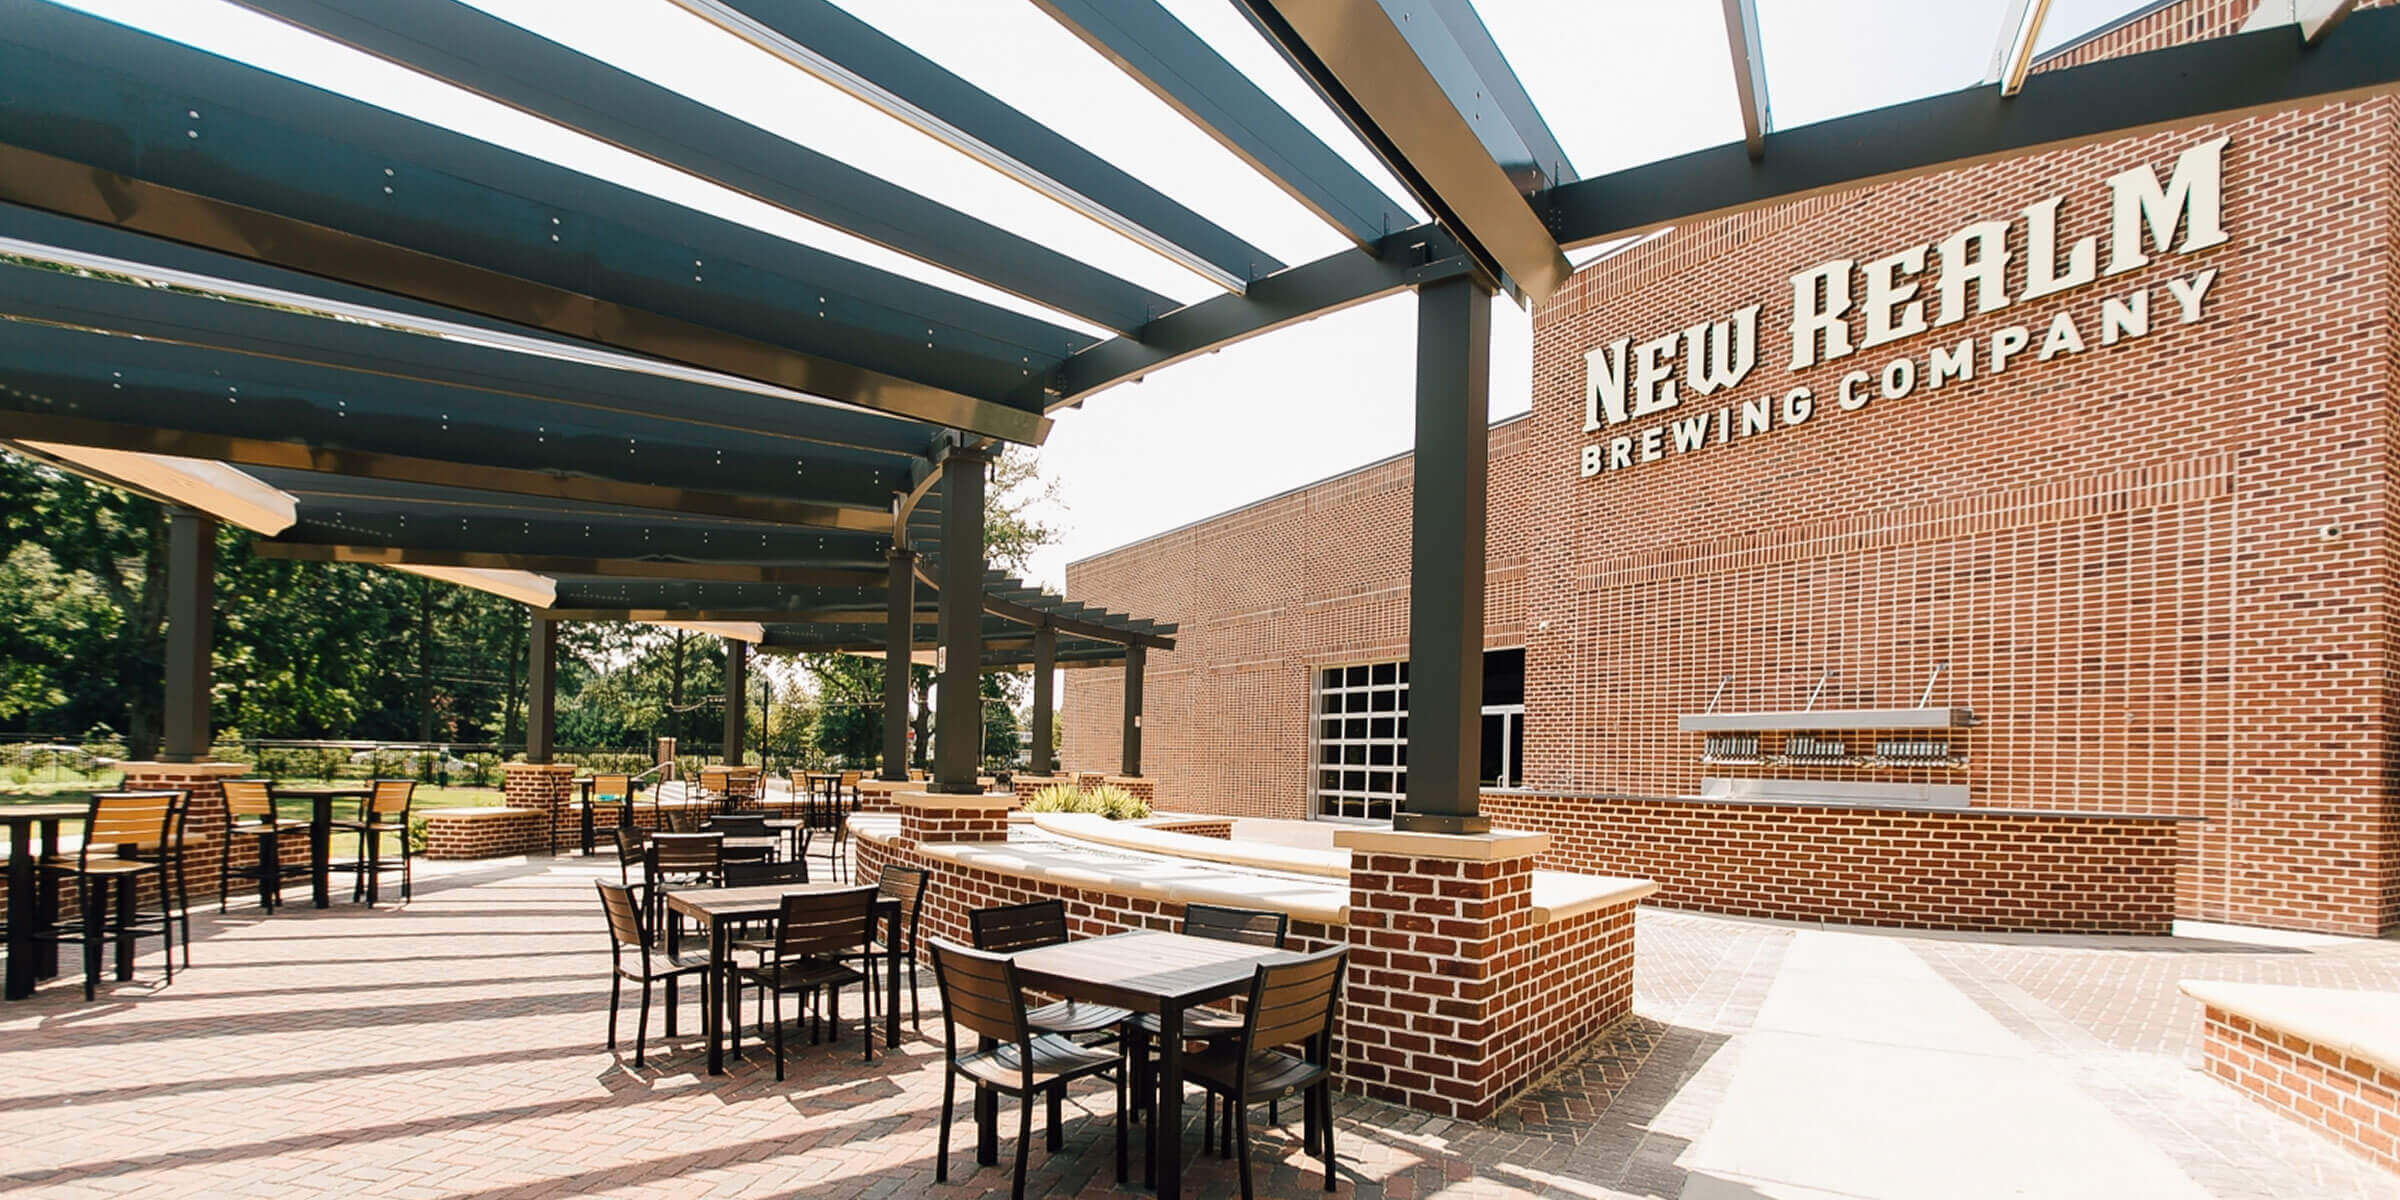 Outdoor space at the New Realm Brewing Company location in Virginia Beach, Virginia